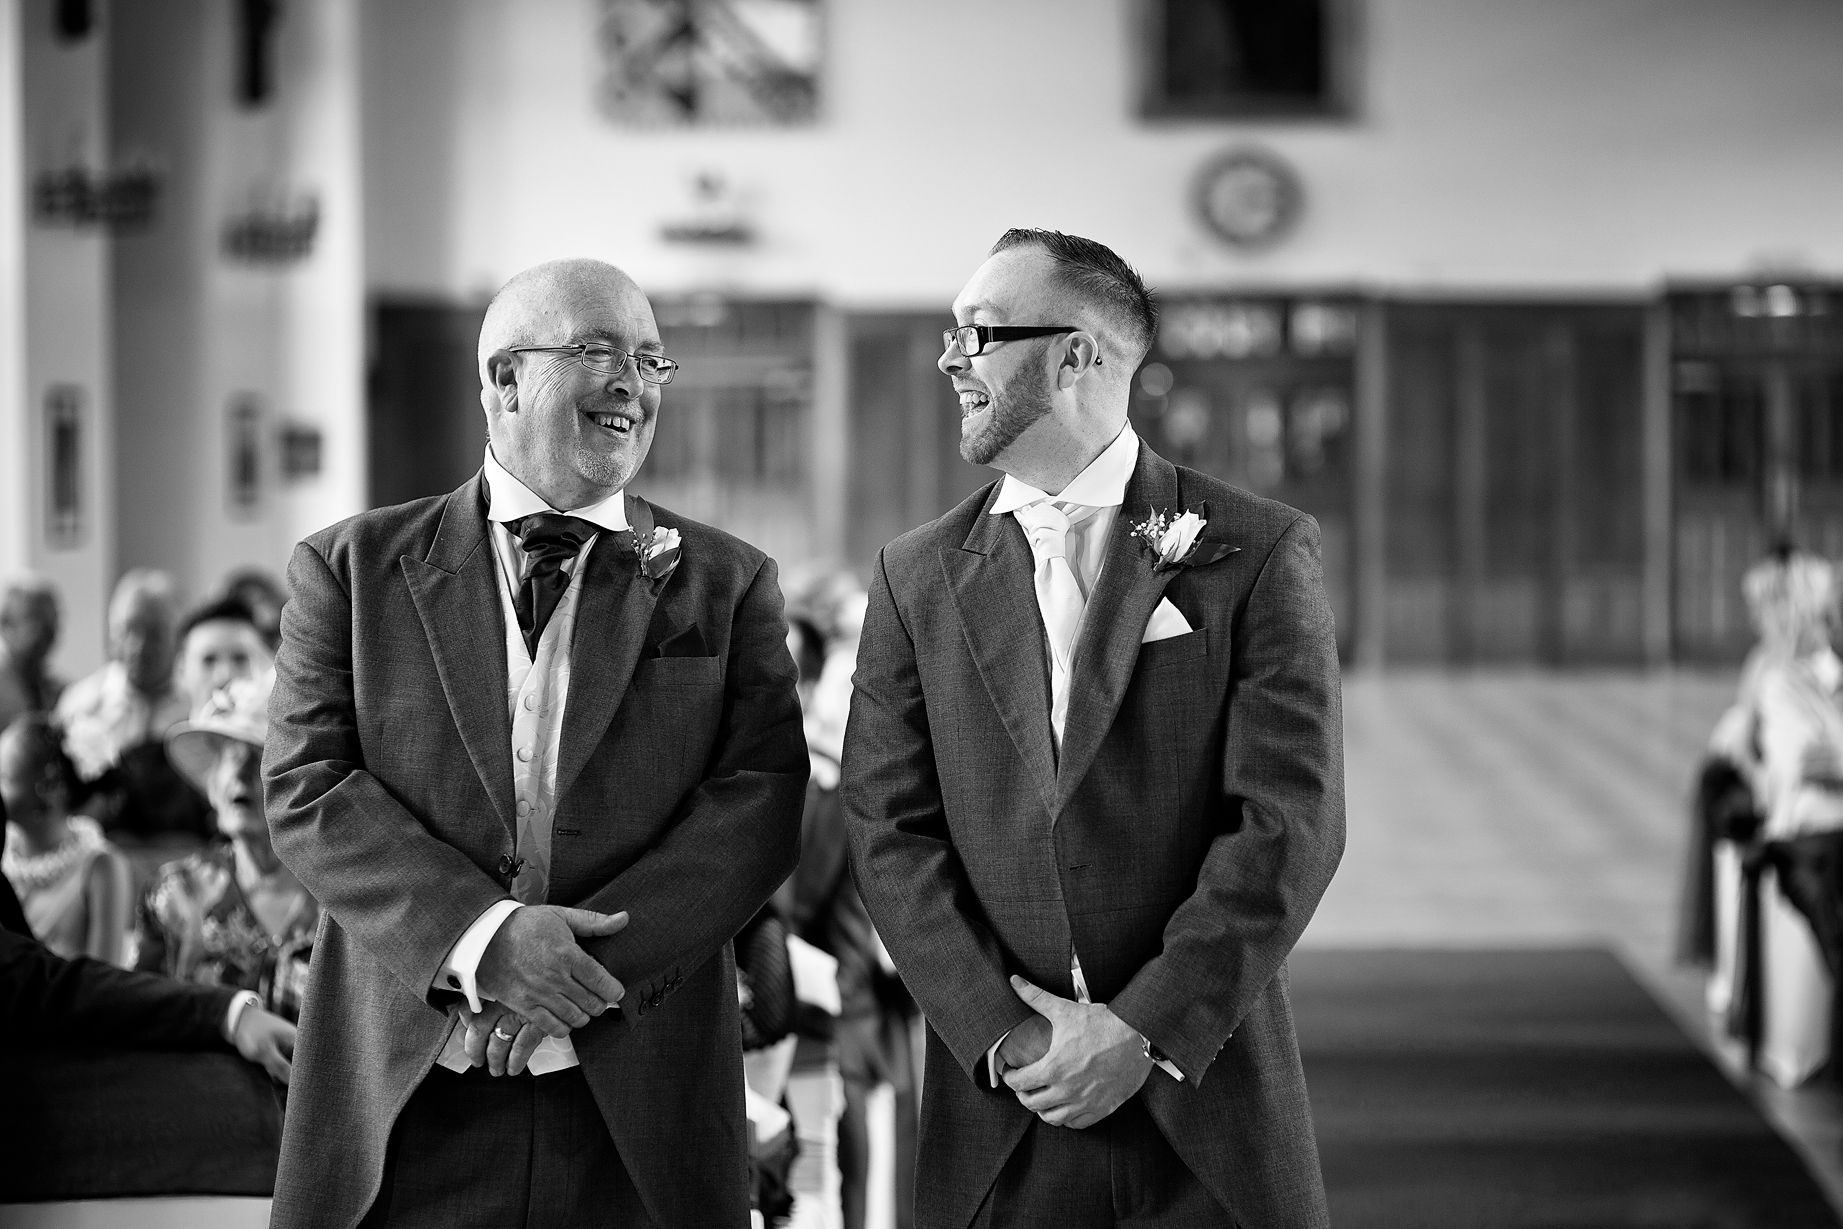 Bolton school wedding photographer image of groom and father of bride during the ceremony